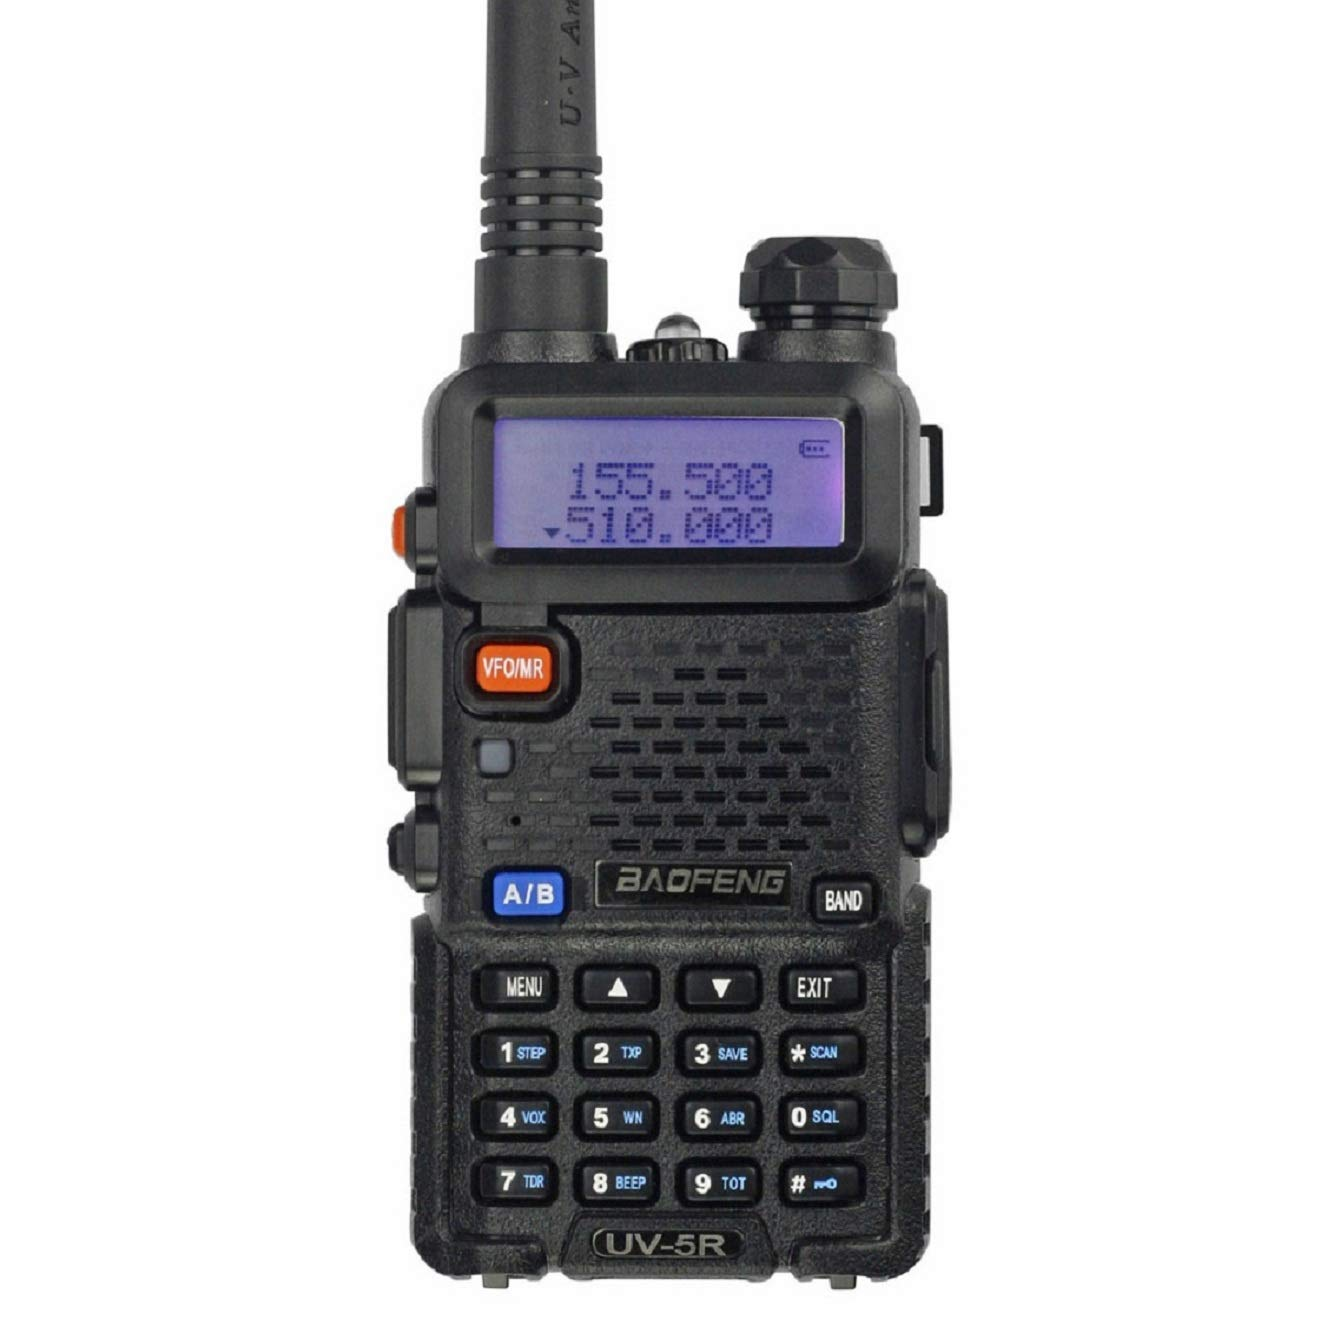 BaoFeng UV-5R Dual Band Two Way Radio (Black) by BAOFENG